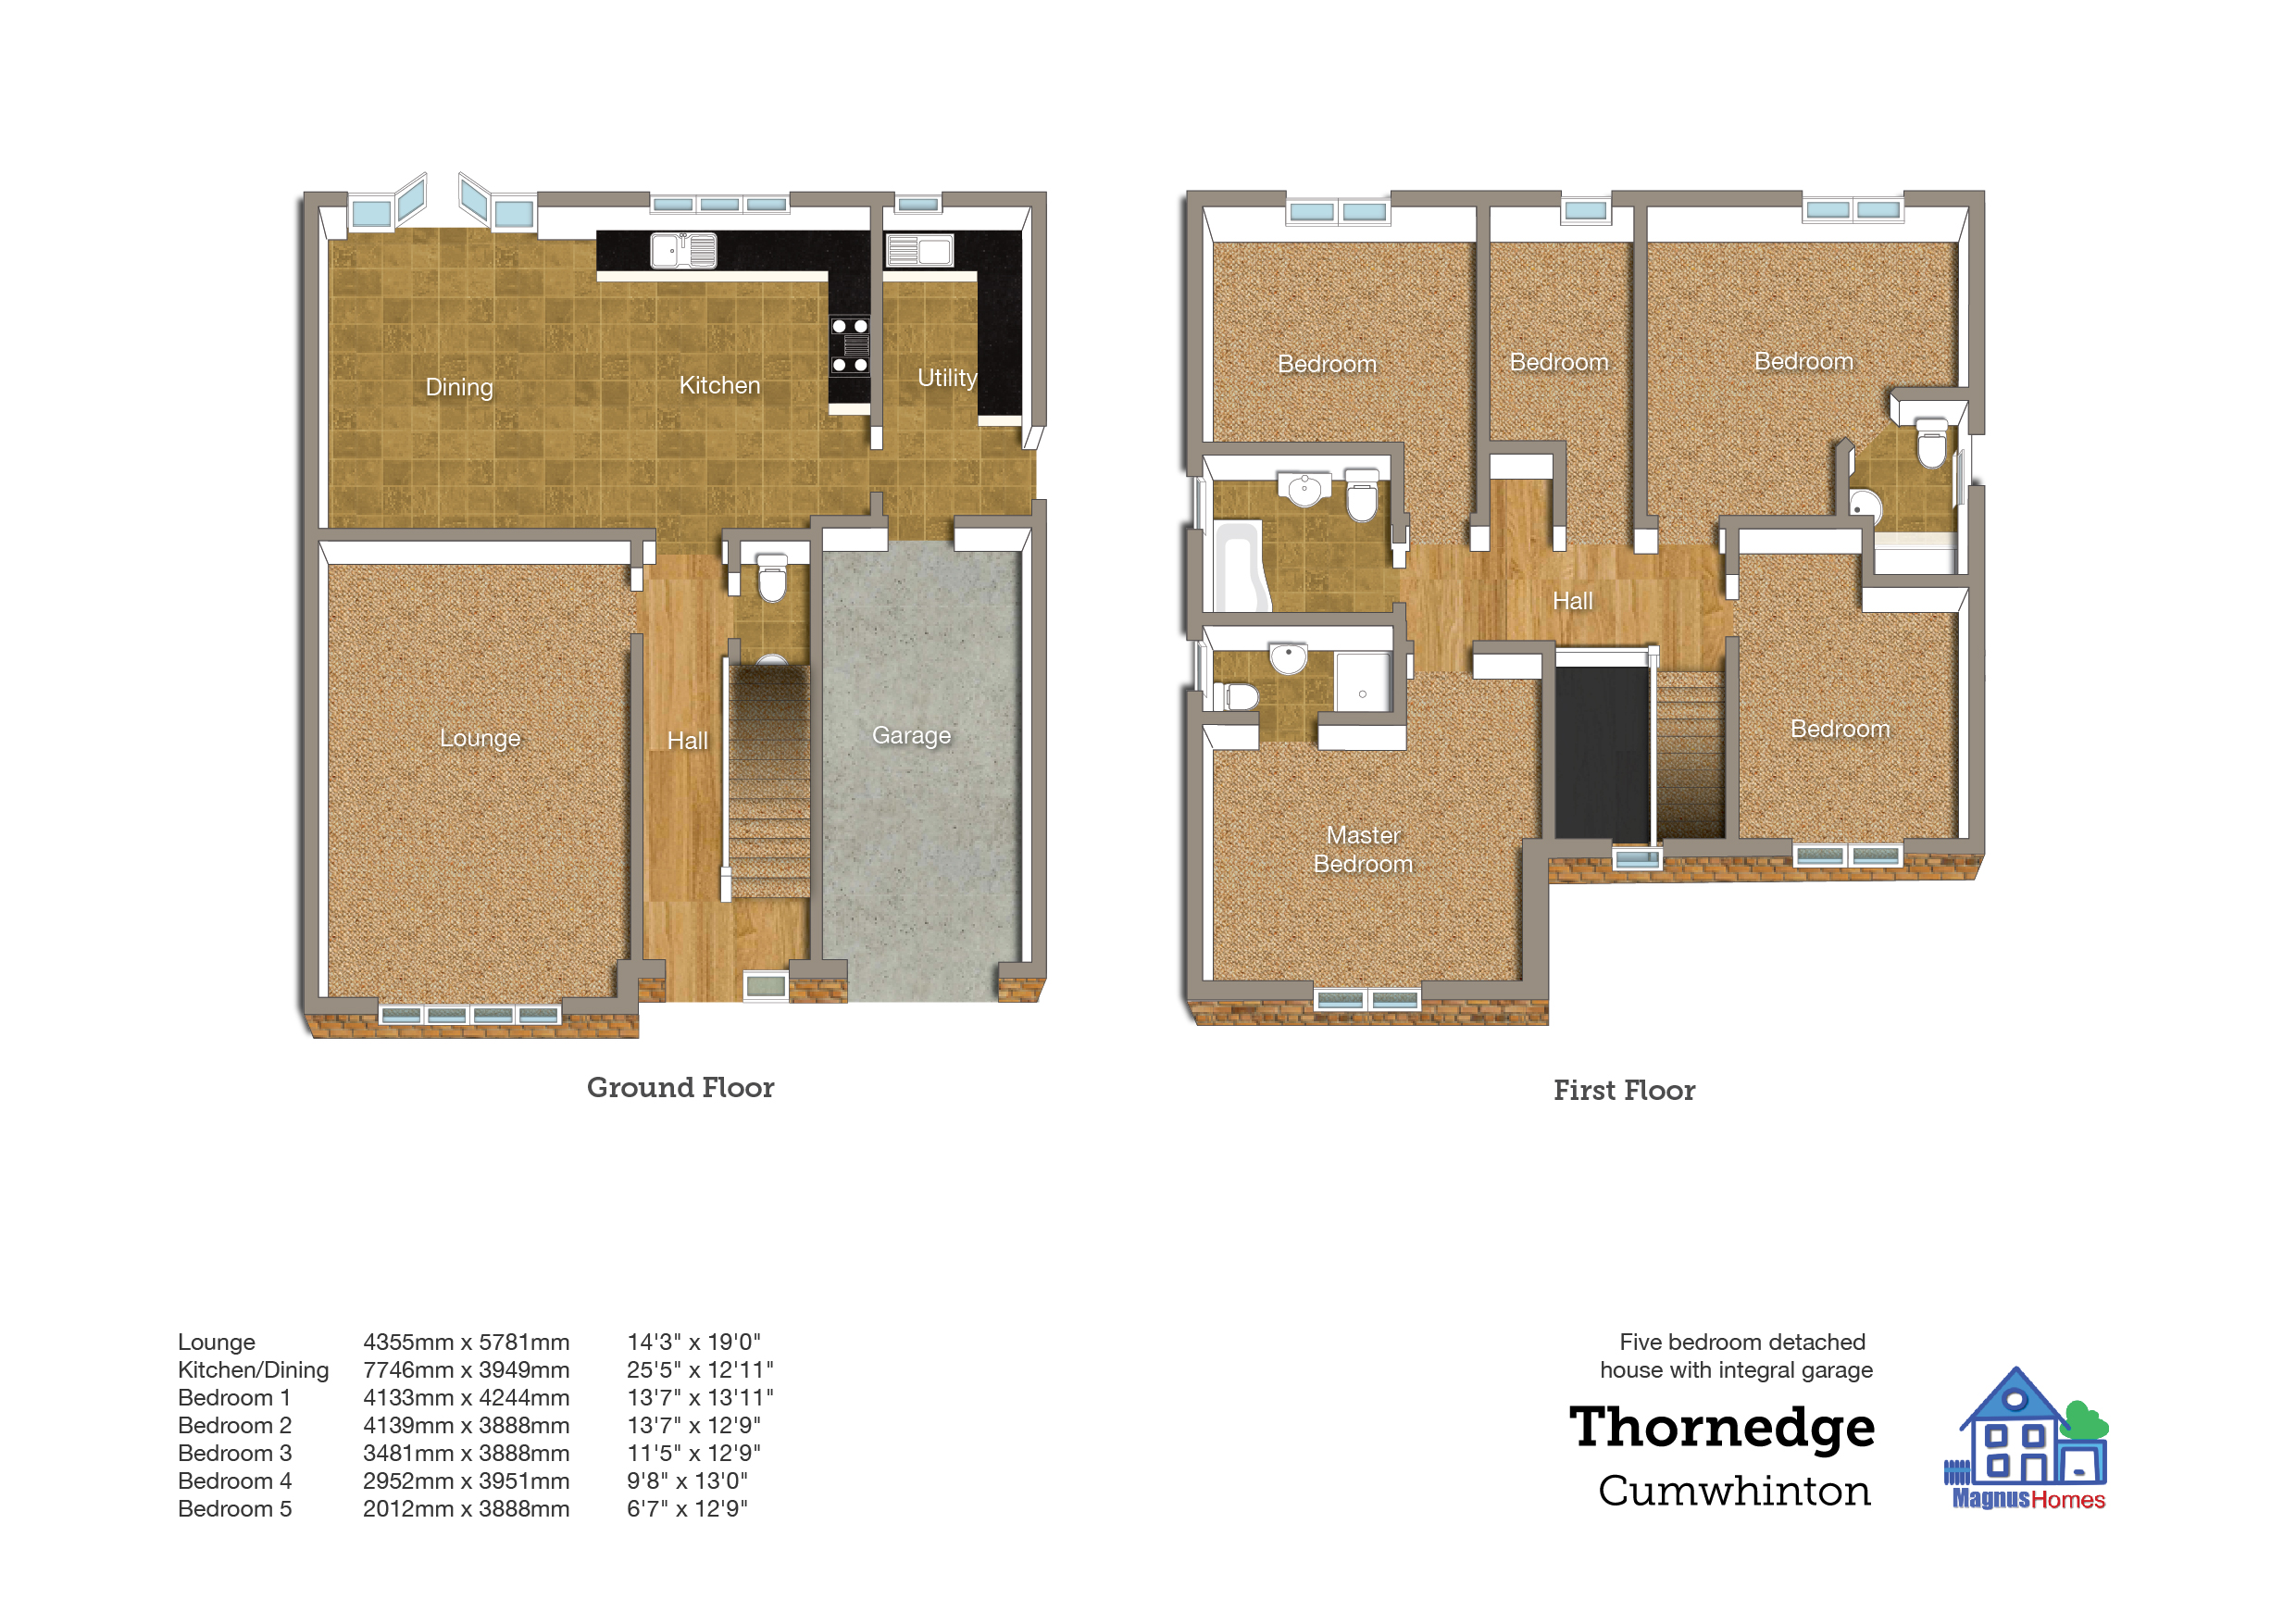 5 Bedroom Detached House With Integral Garage And